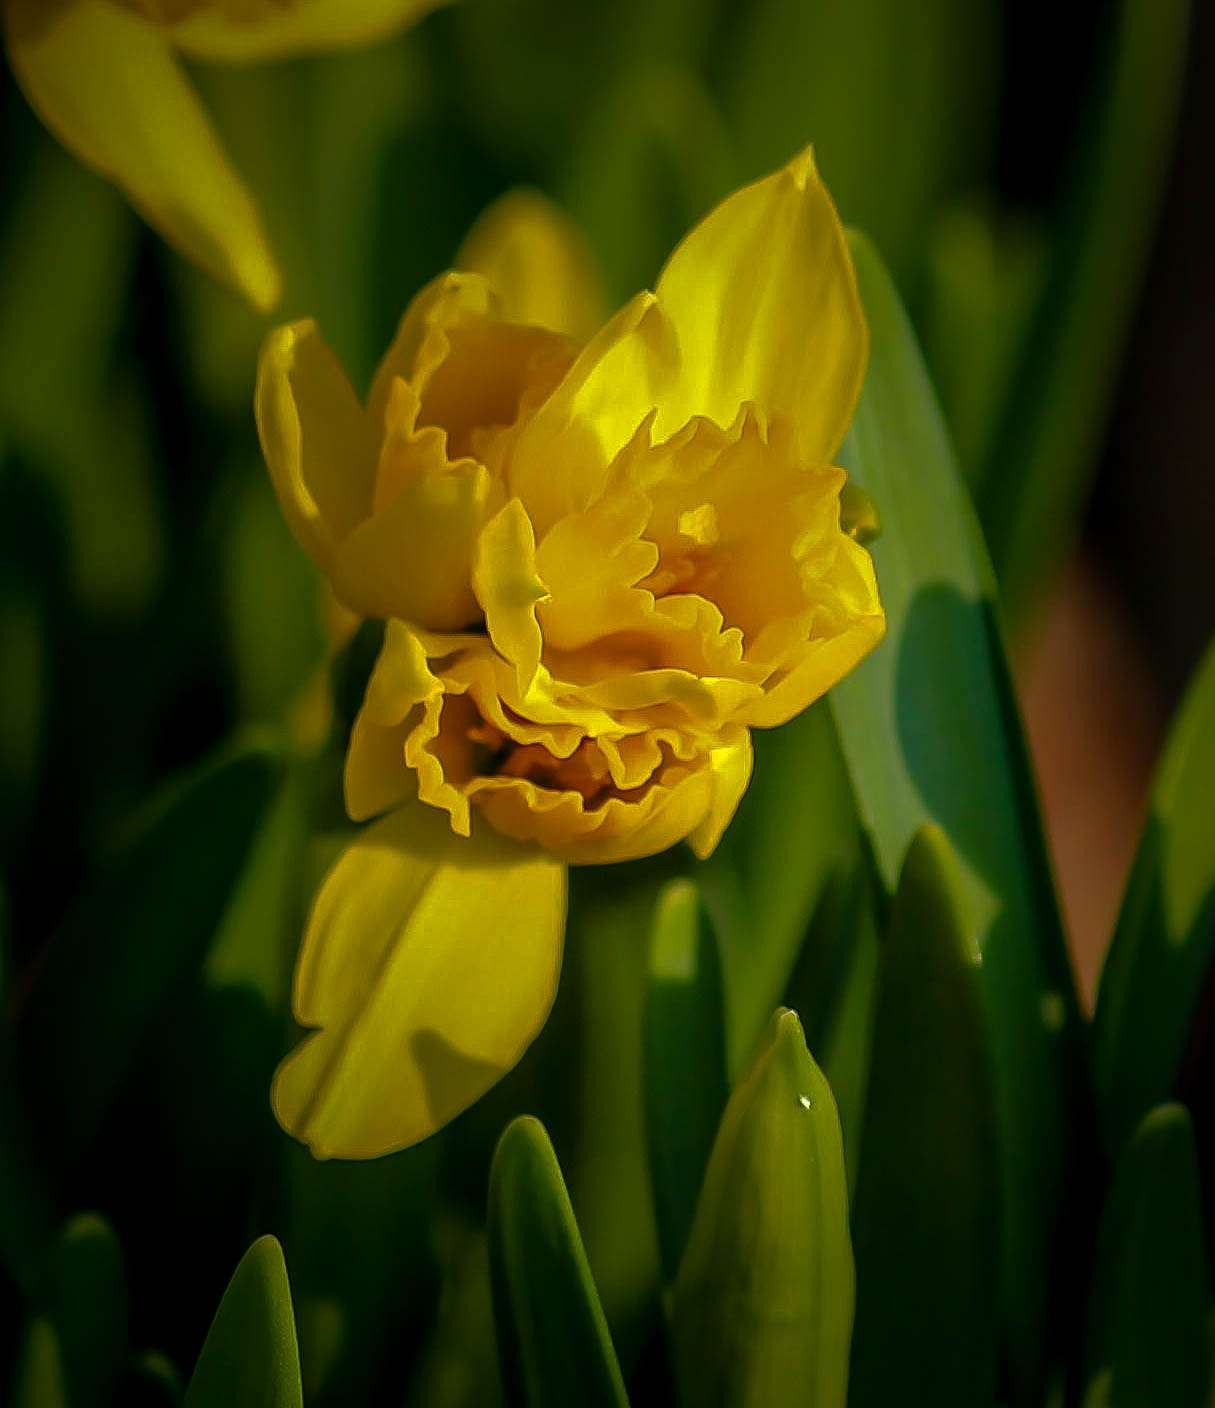 The daffodil meets the day by barbro.hansson.9